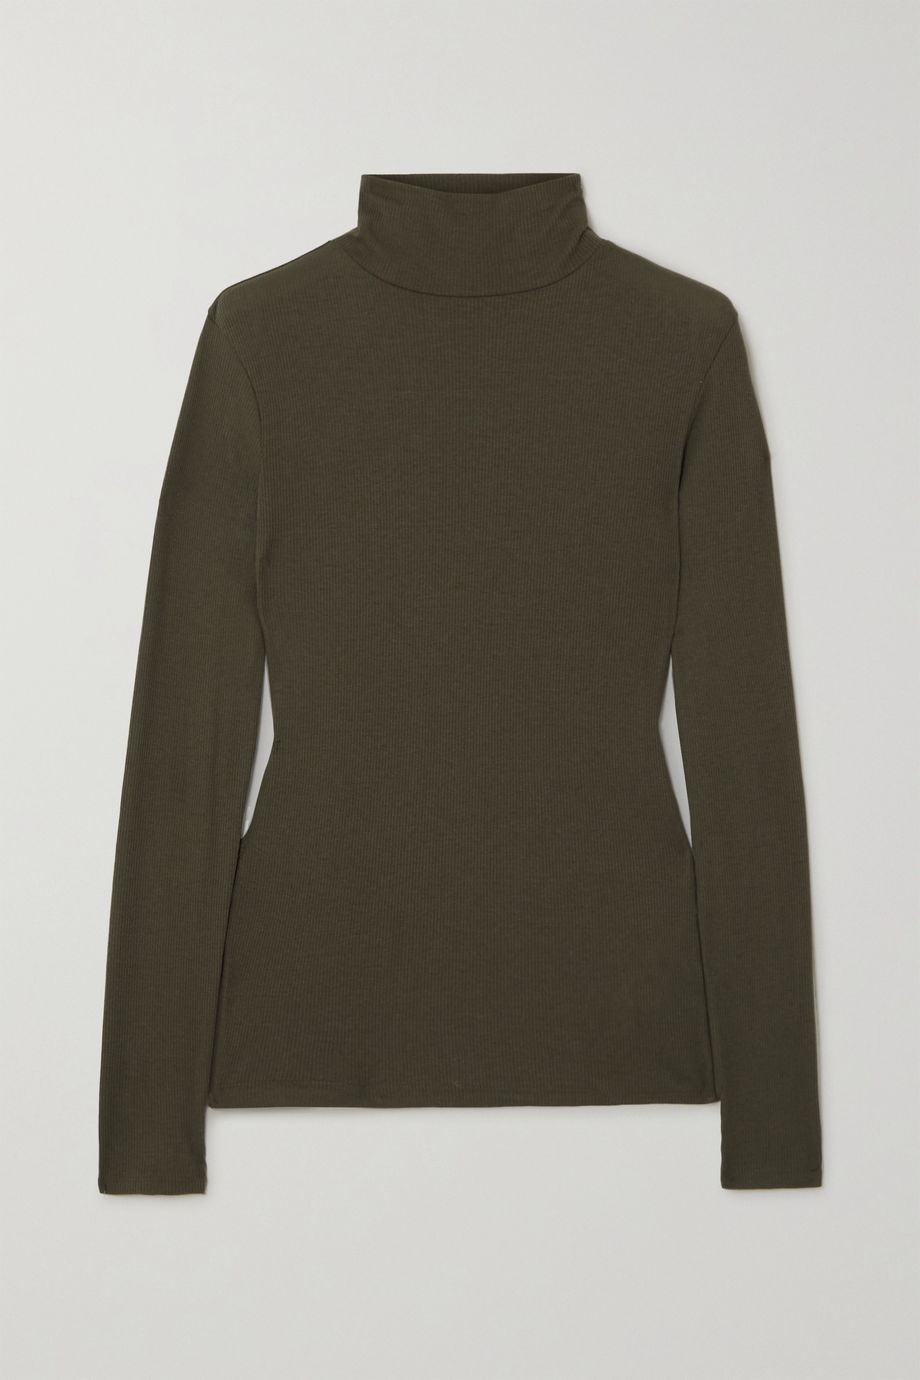 Ninety Percent + NET SUSTAIN Kaye ribbed organic cotton-jersey turtleneck top